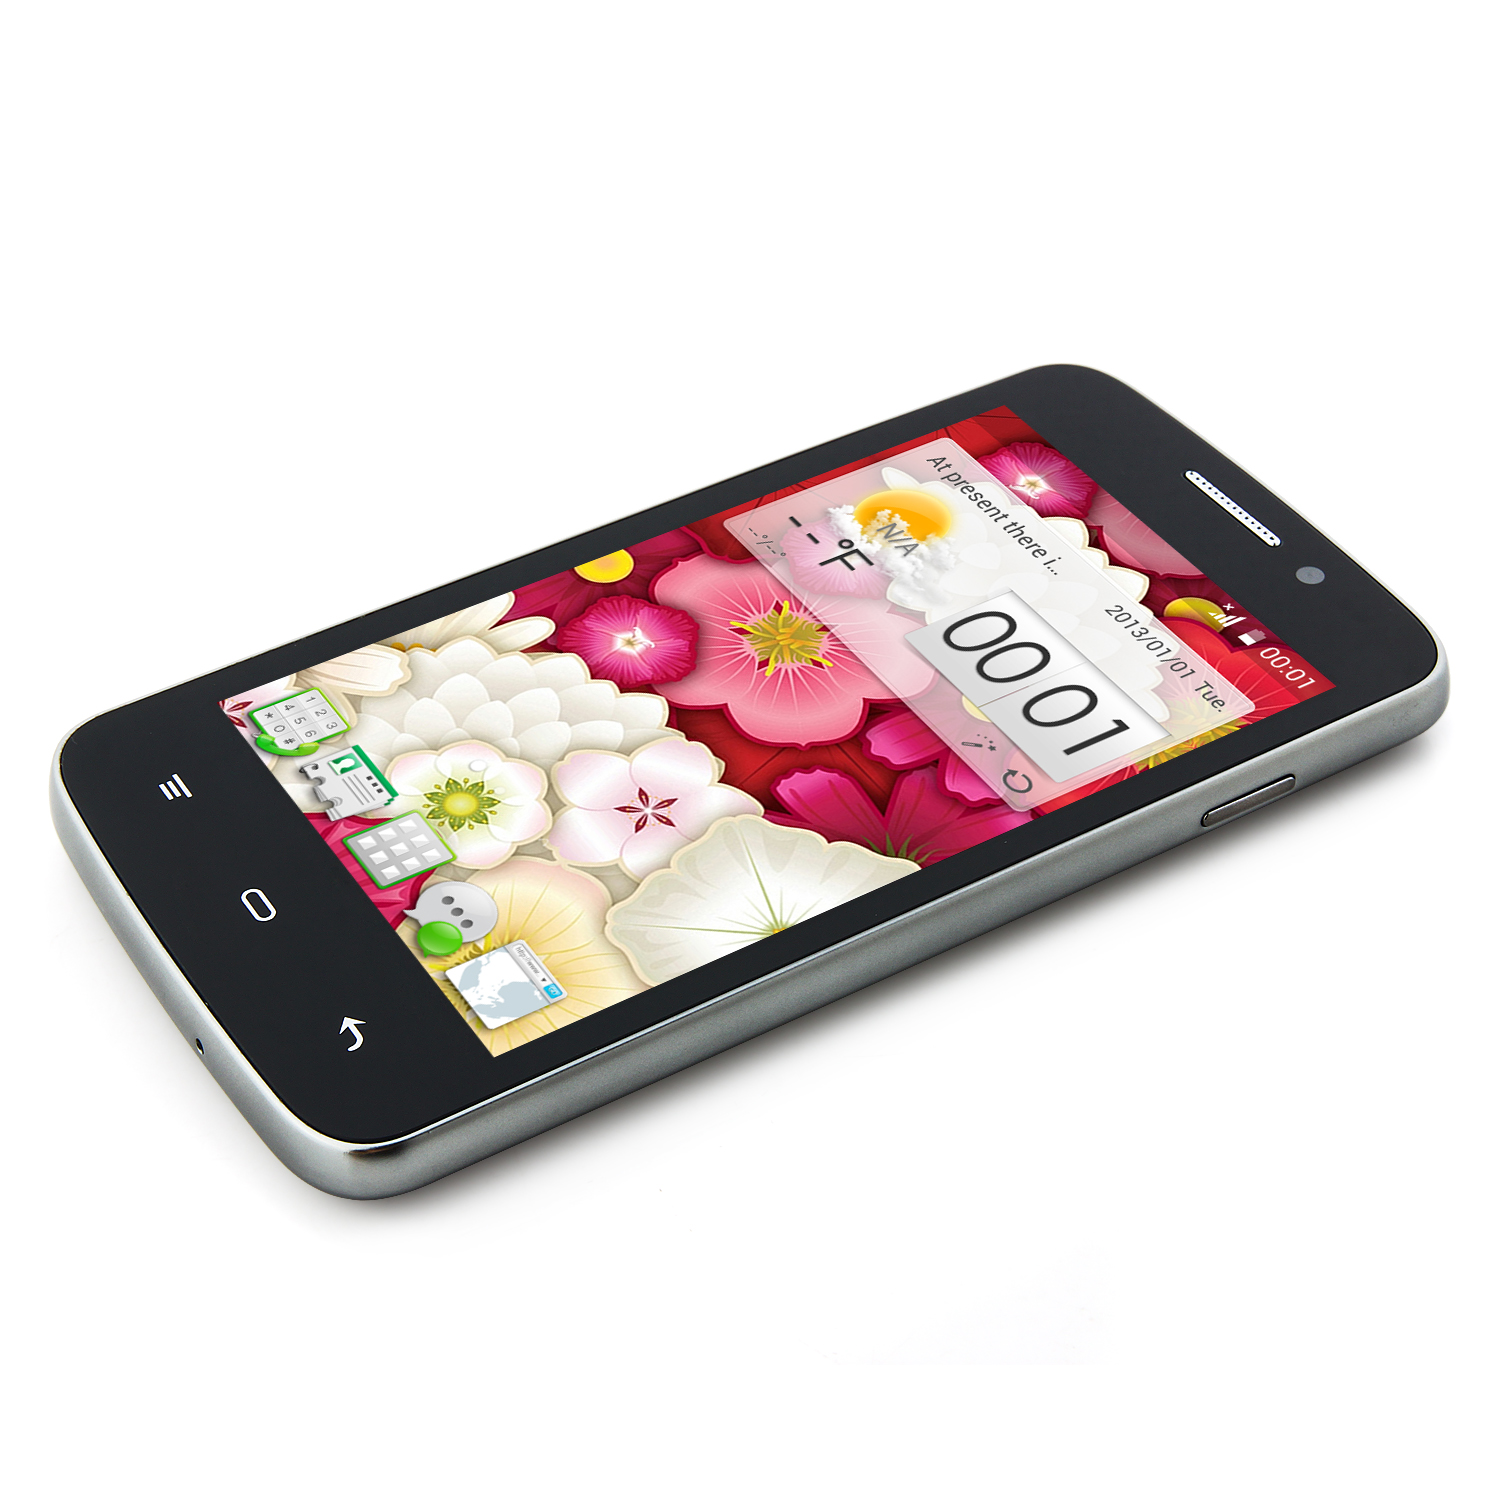 MIXC G7108 Smartphone Android 4.2 MTK6572W Dual Core 4.3 Inch 3G GPS Black